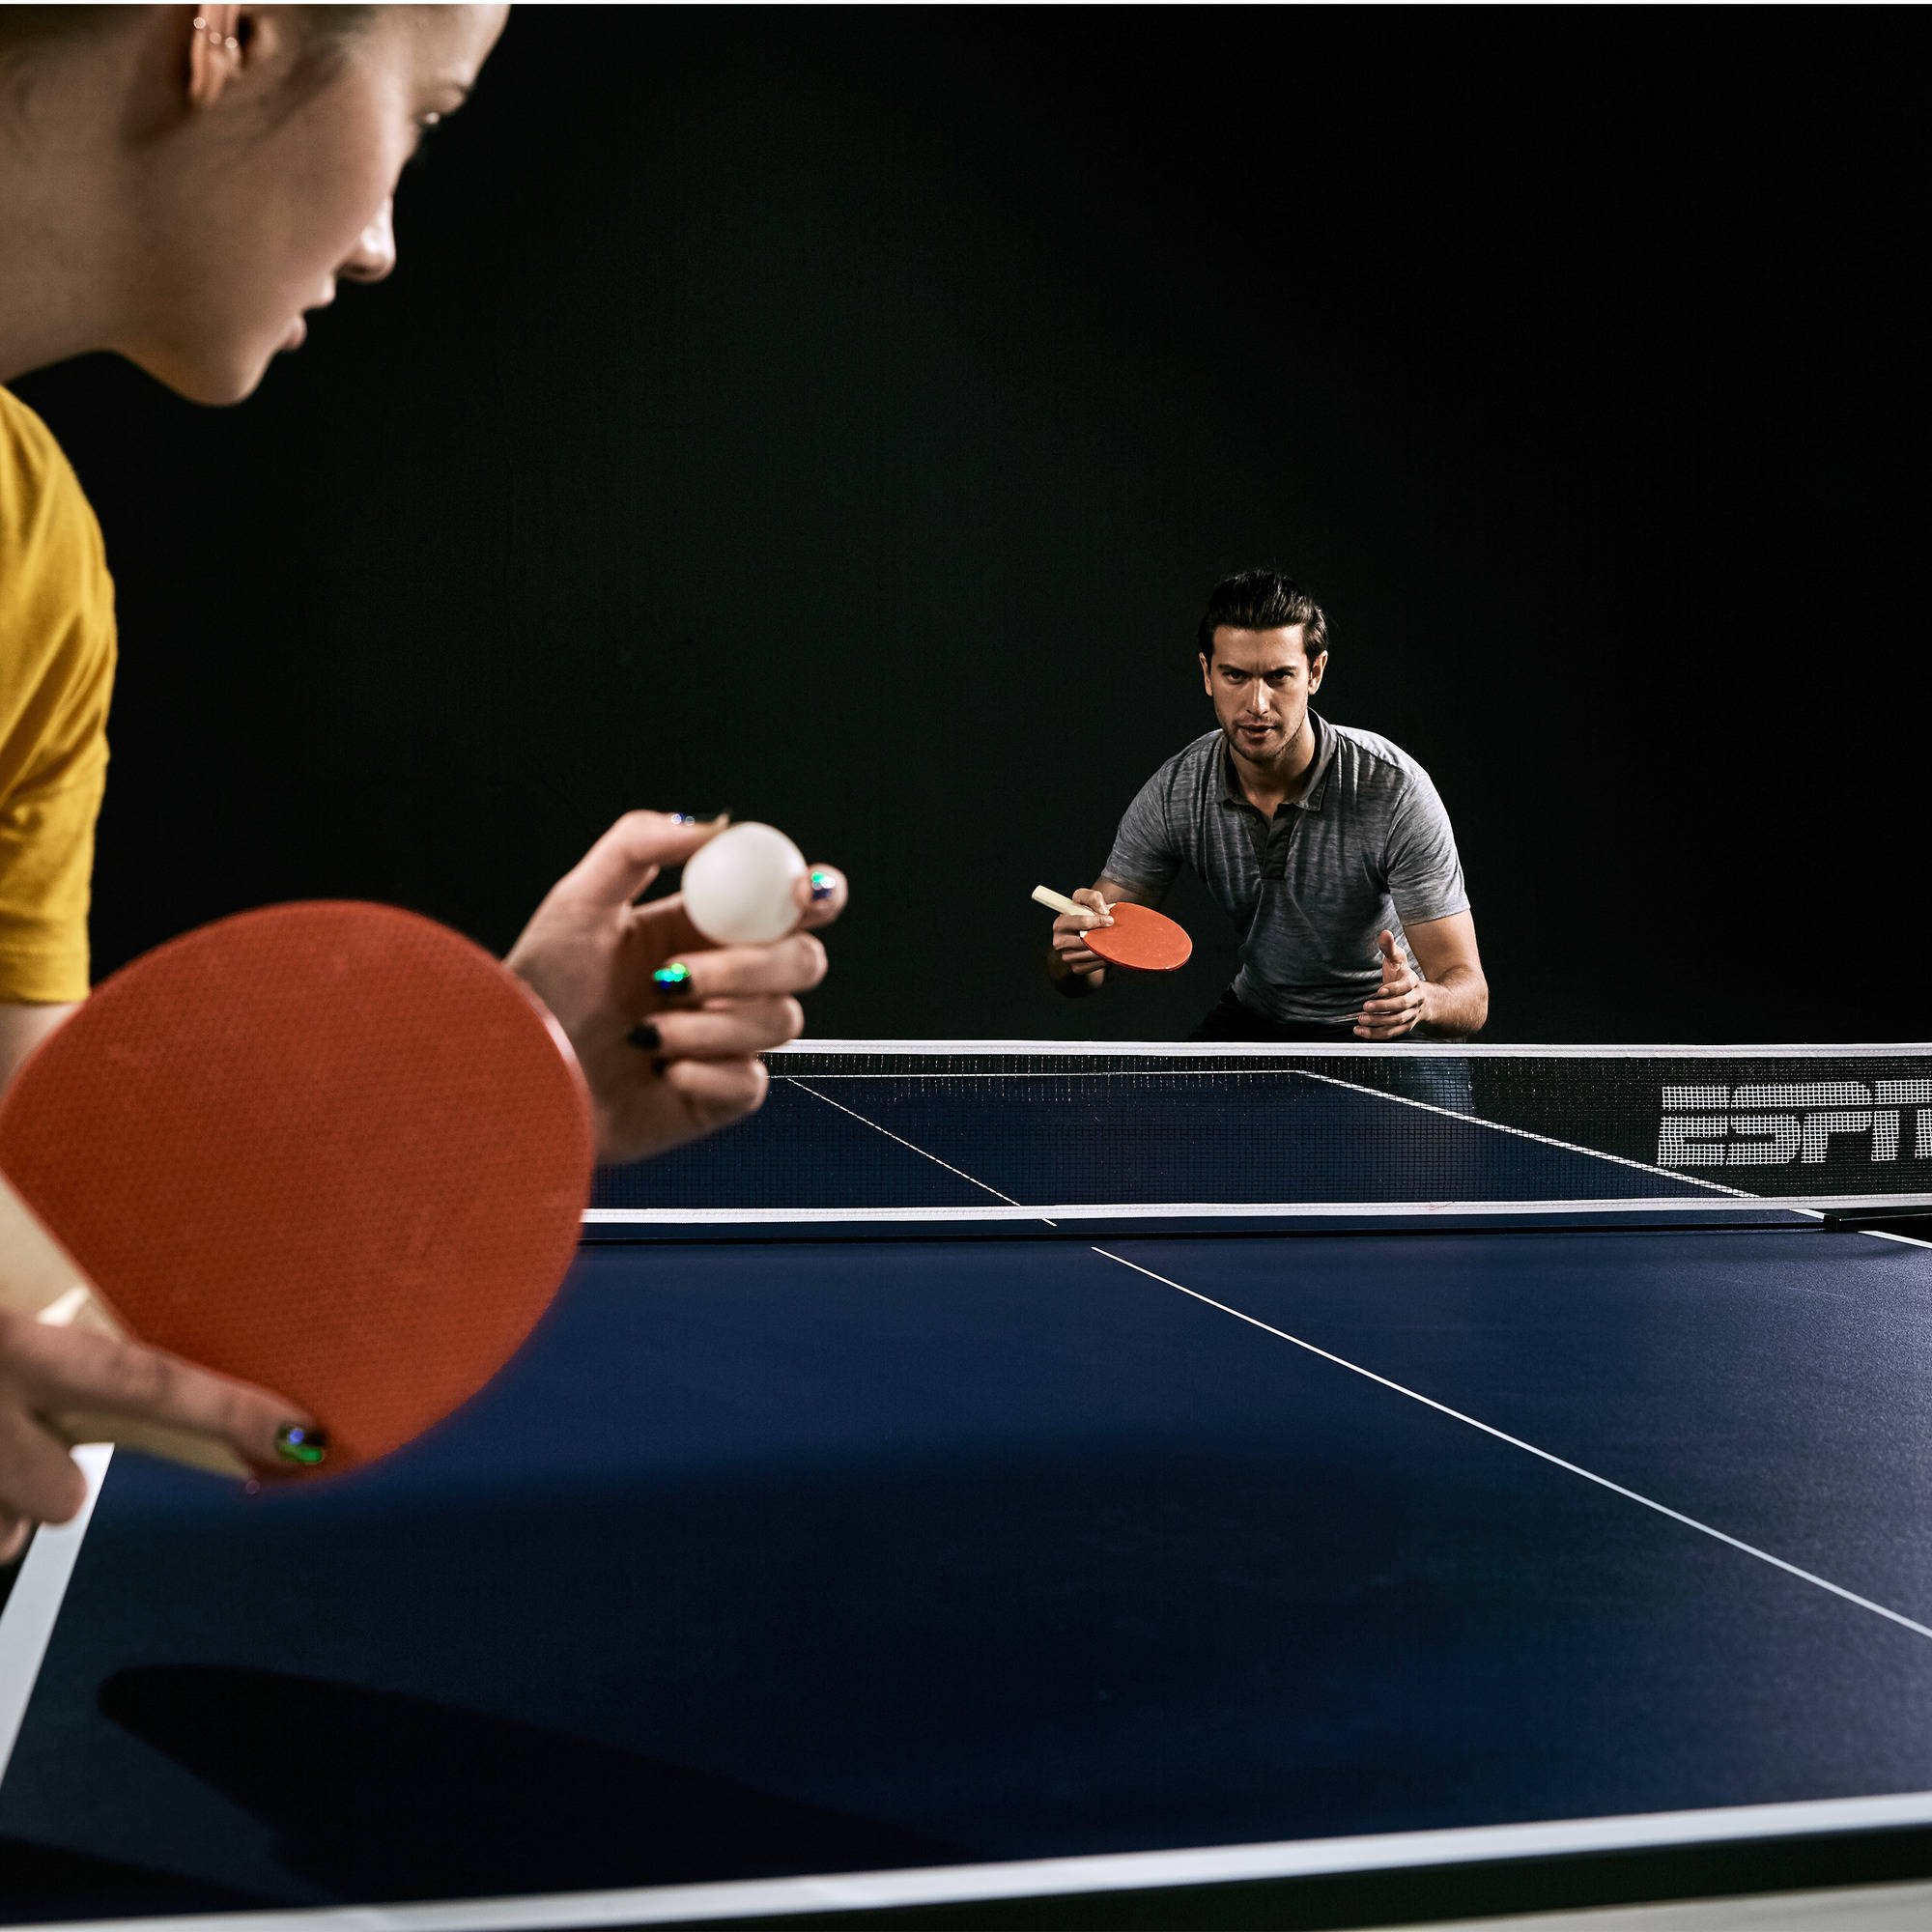 Table Tennis Table ESPN Ping Pong Official Size Foldable Professional W/  Cover